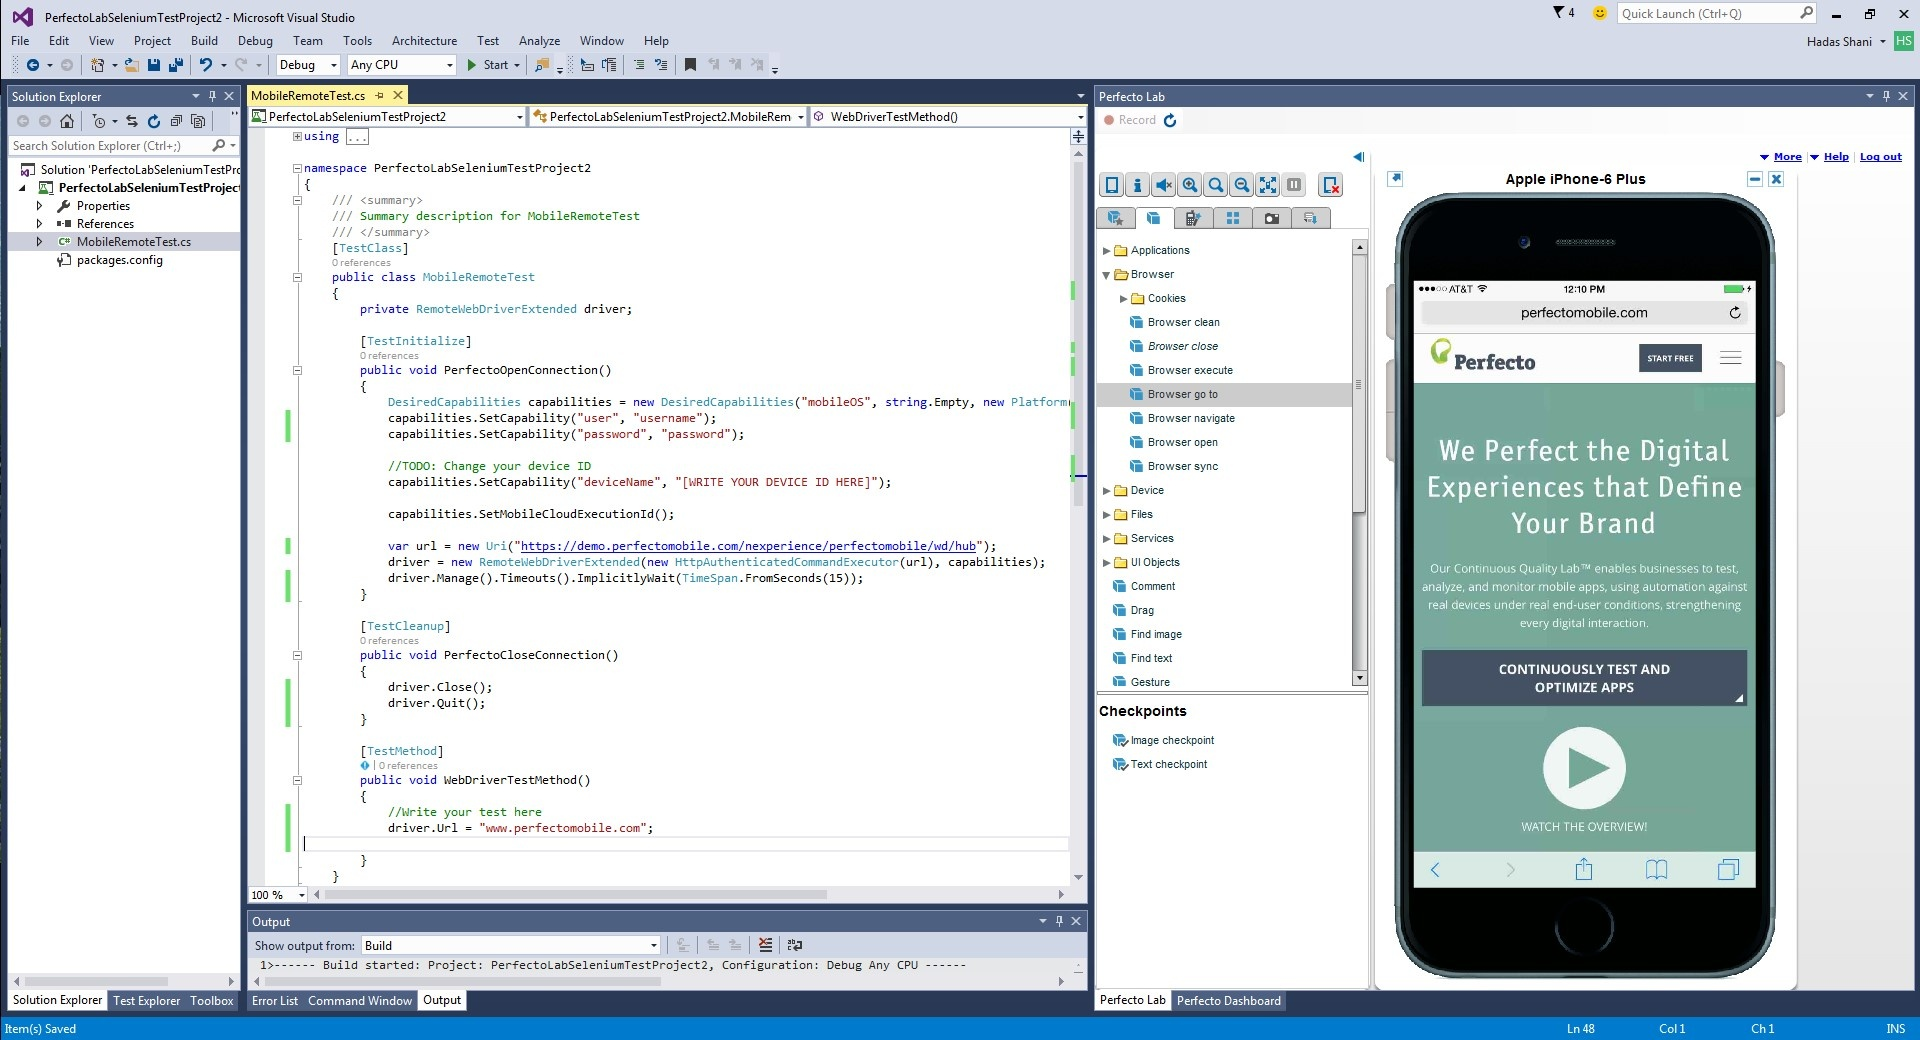 Perfecto Mobile for Visual Studio IDE - TIPS AND TRICKS